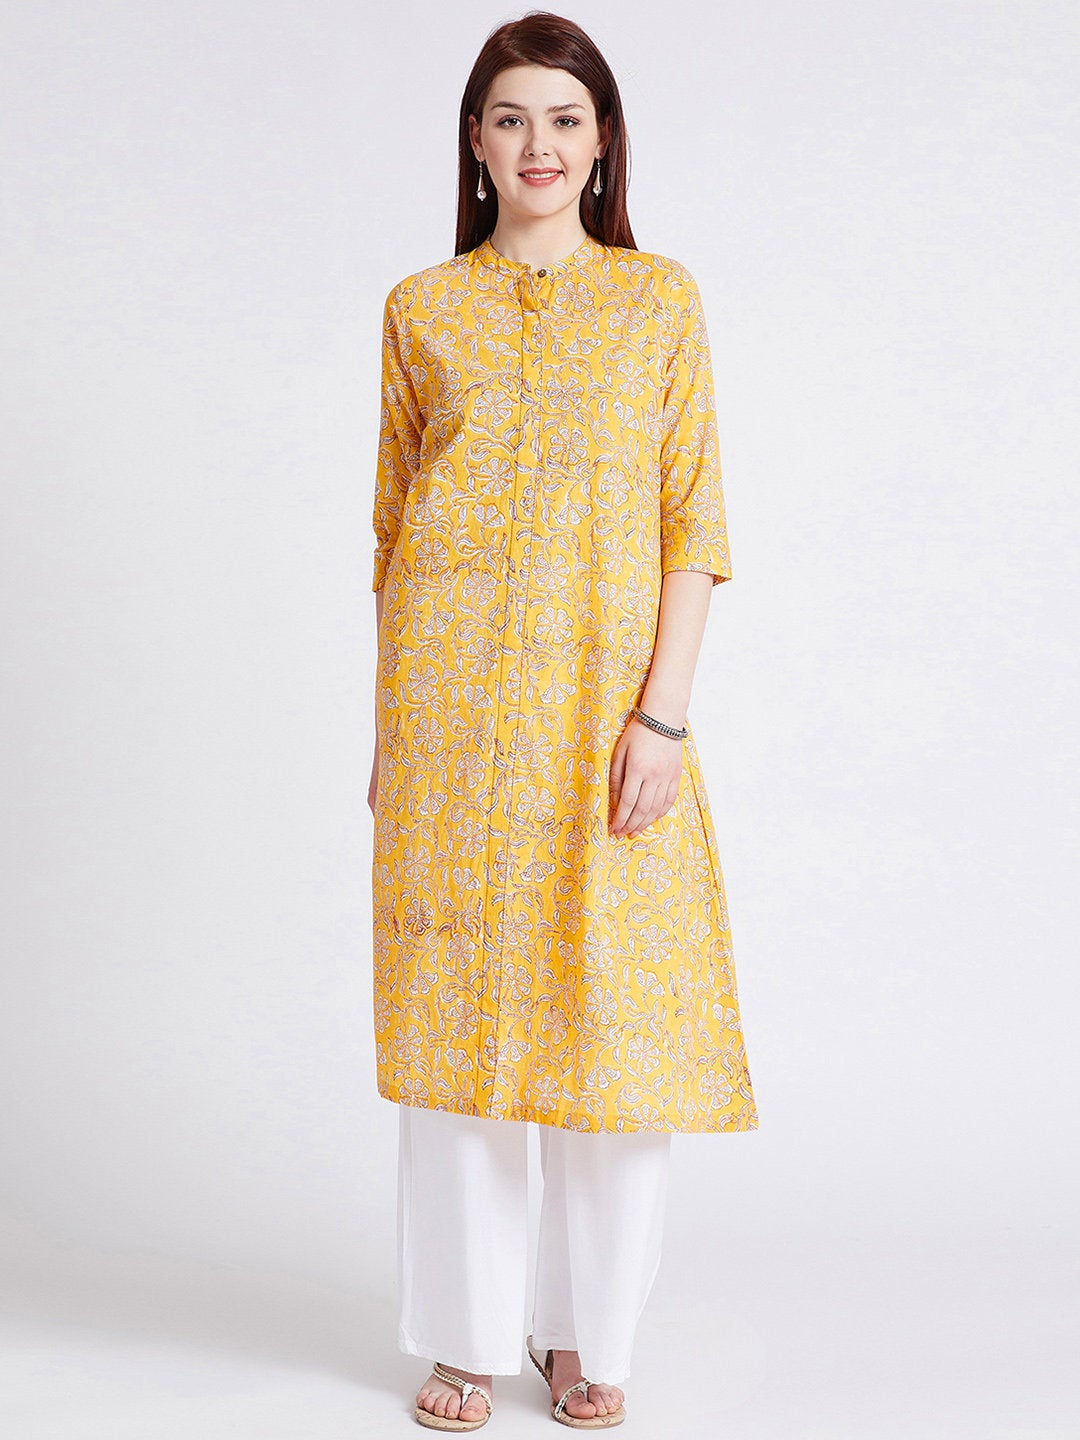 Indian ethnic hand block printed long kurta with front slit in turmeric yellow colour with pockets with button detailing on front